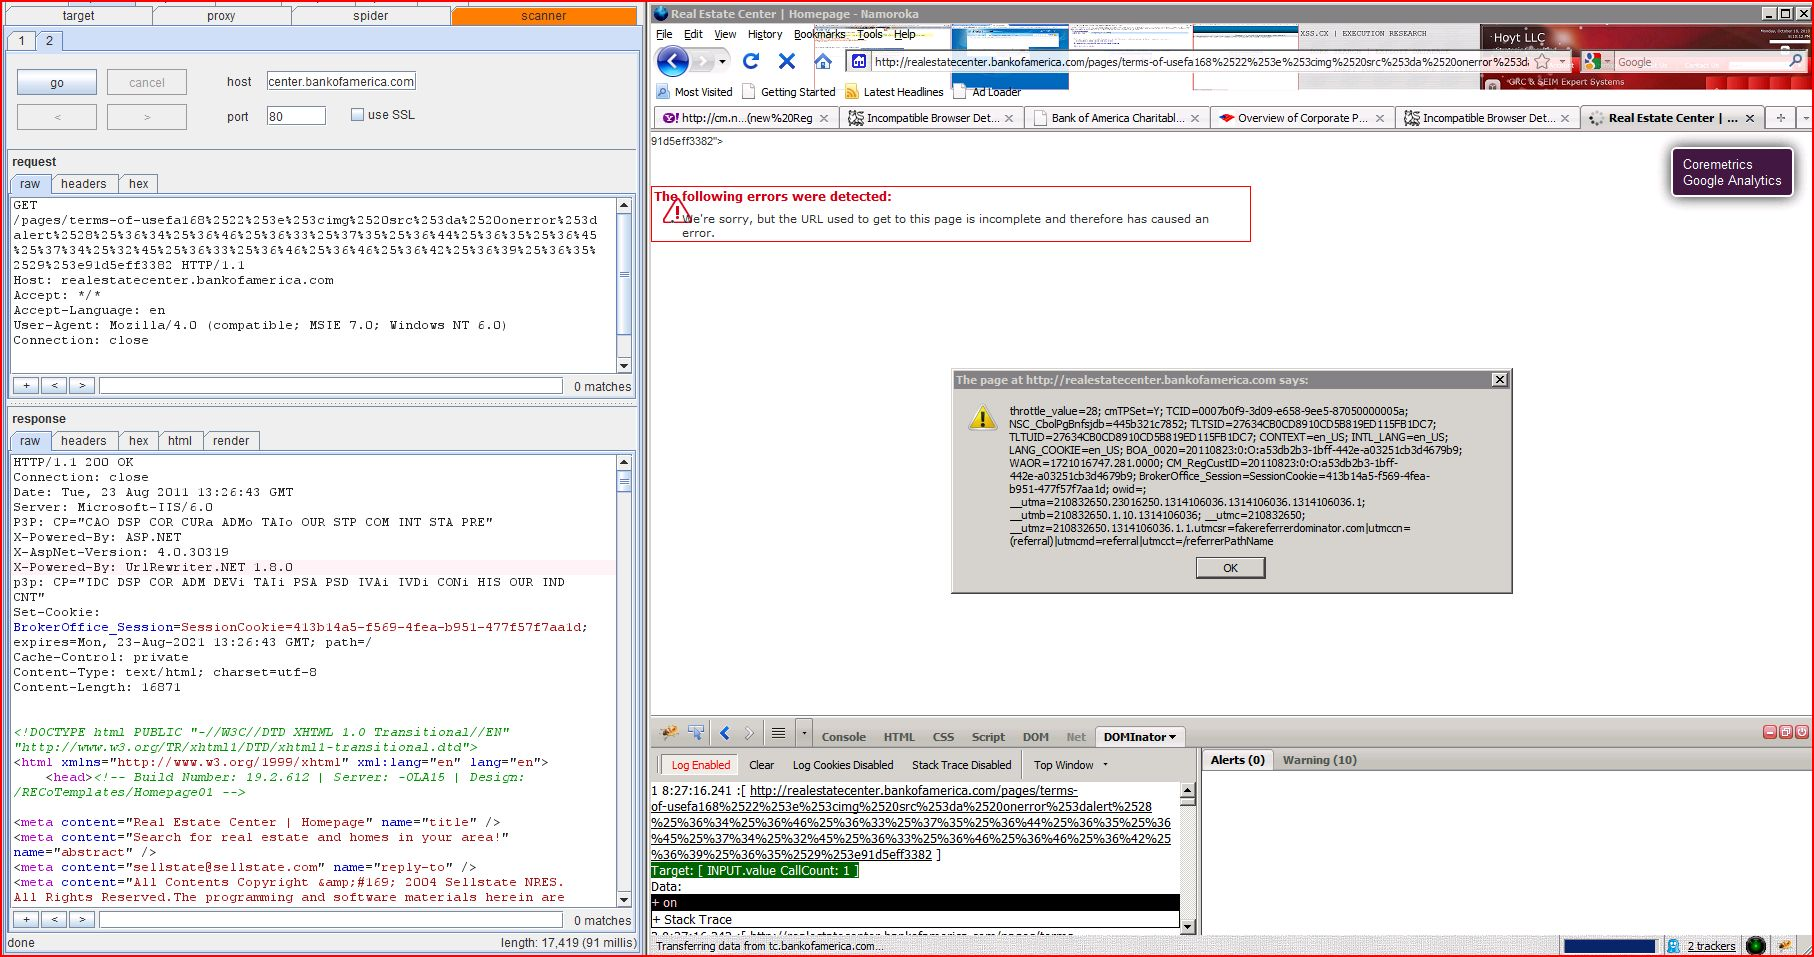 xss reflected cross site scripting cwe 79 capec 86 realestate